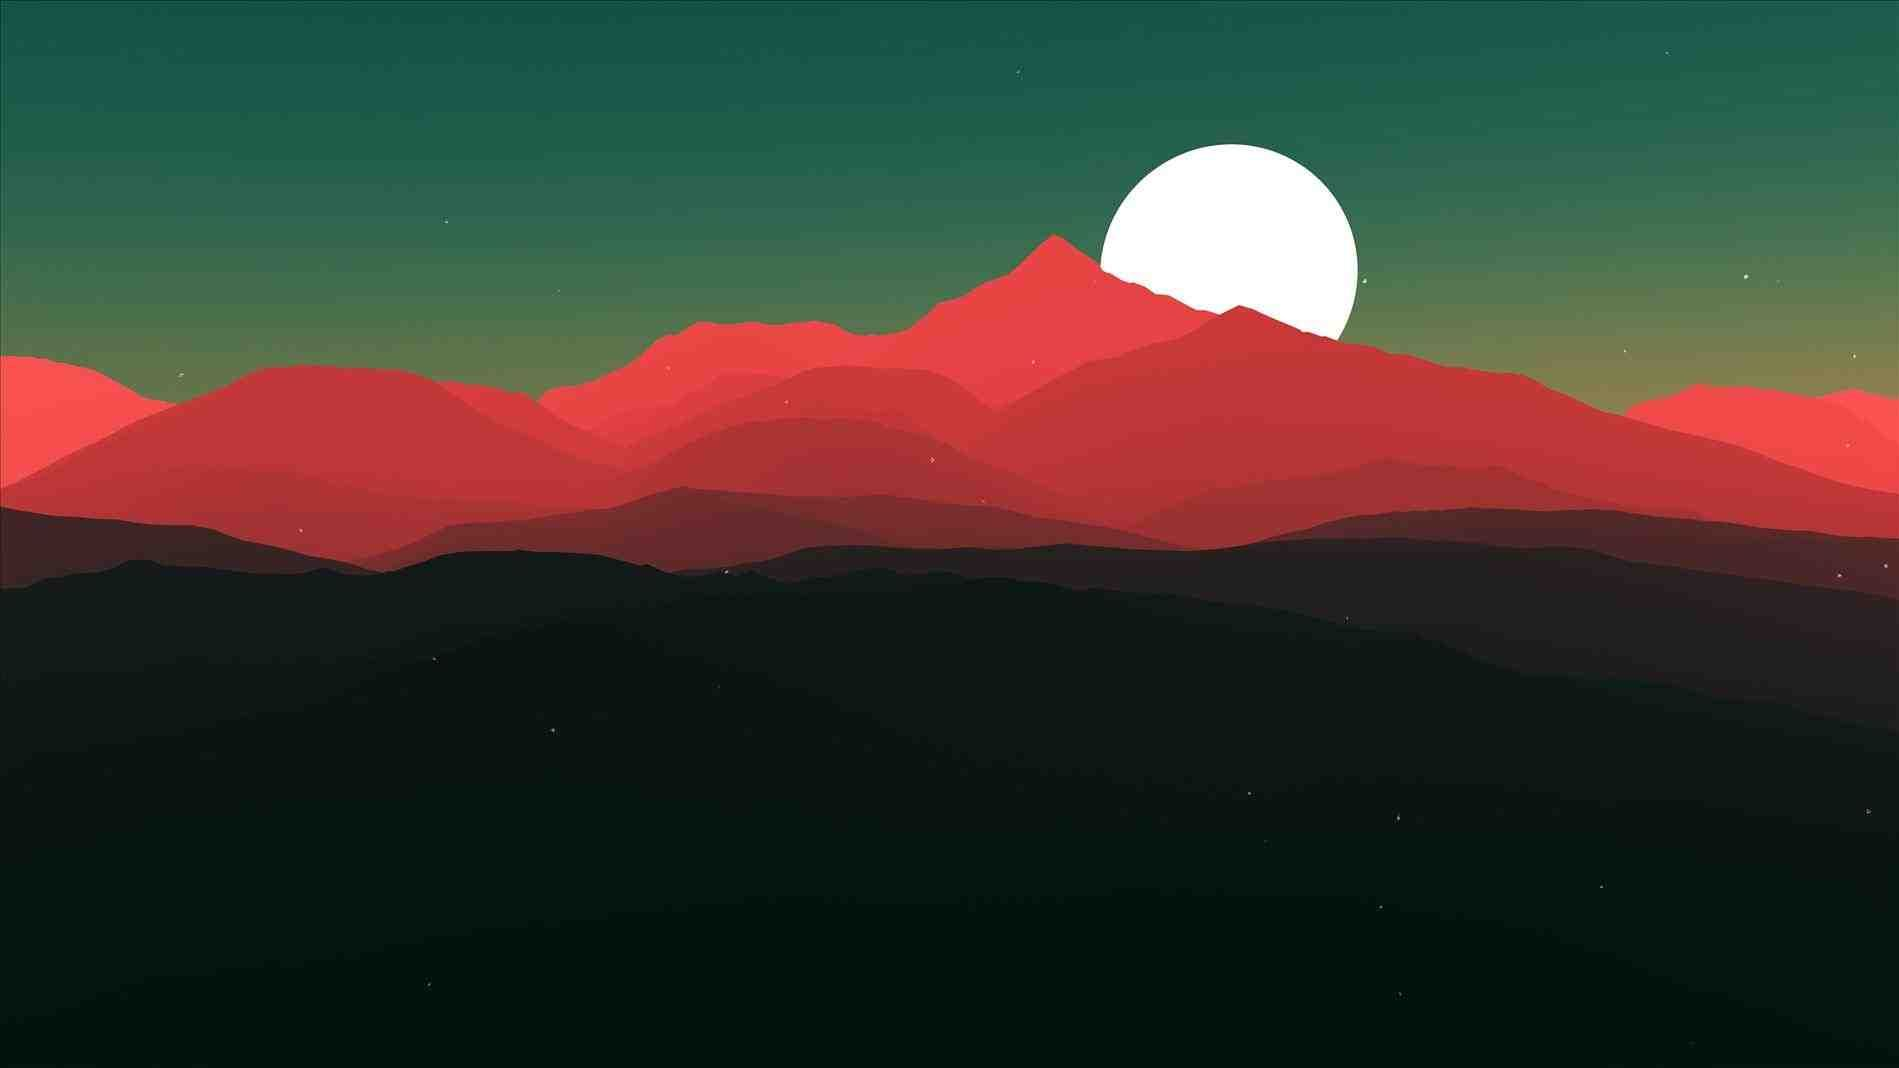 Simple Mountain Landscapes Homedesignlatest Site Mountain Landscape Landscape Landscape Art